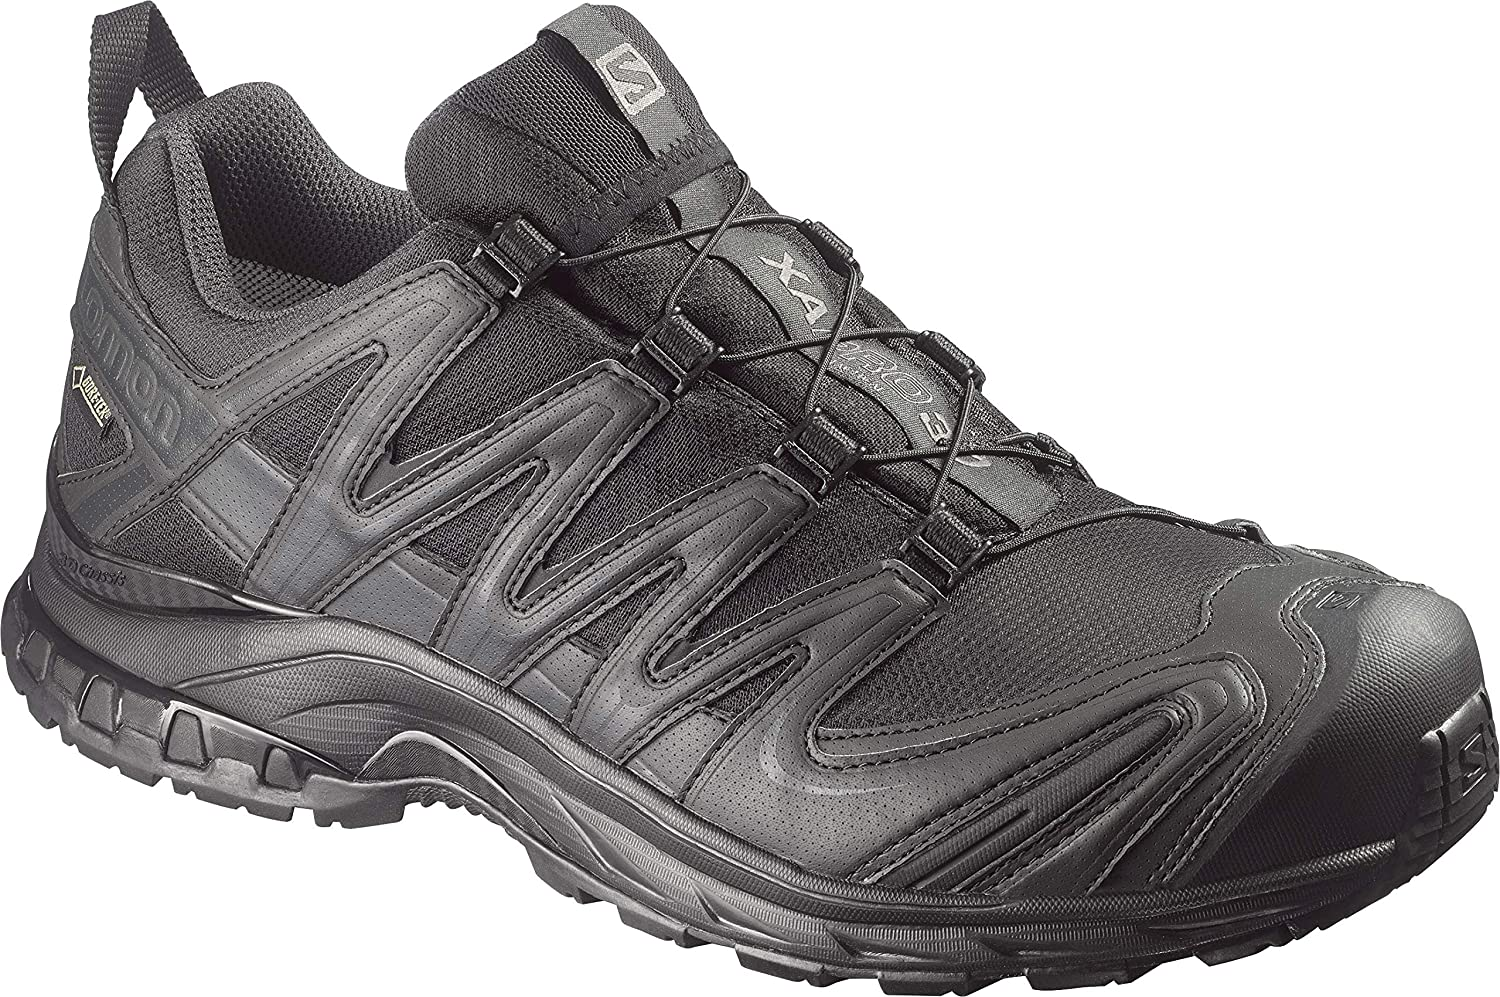 Amazon.com: Salomon Forces XA Pro 3D GTX Tactical Shoes: Shoes